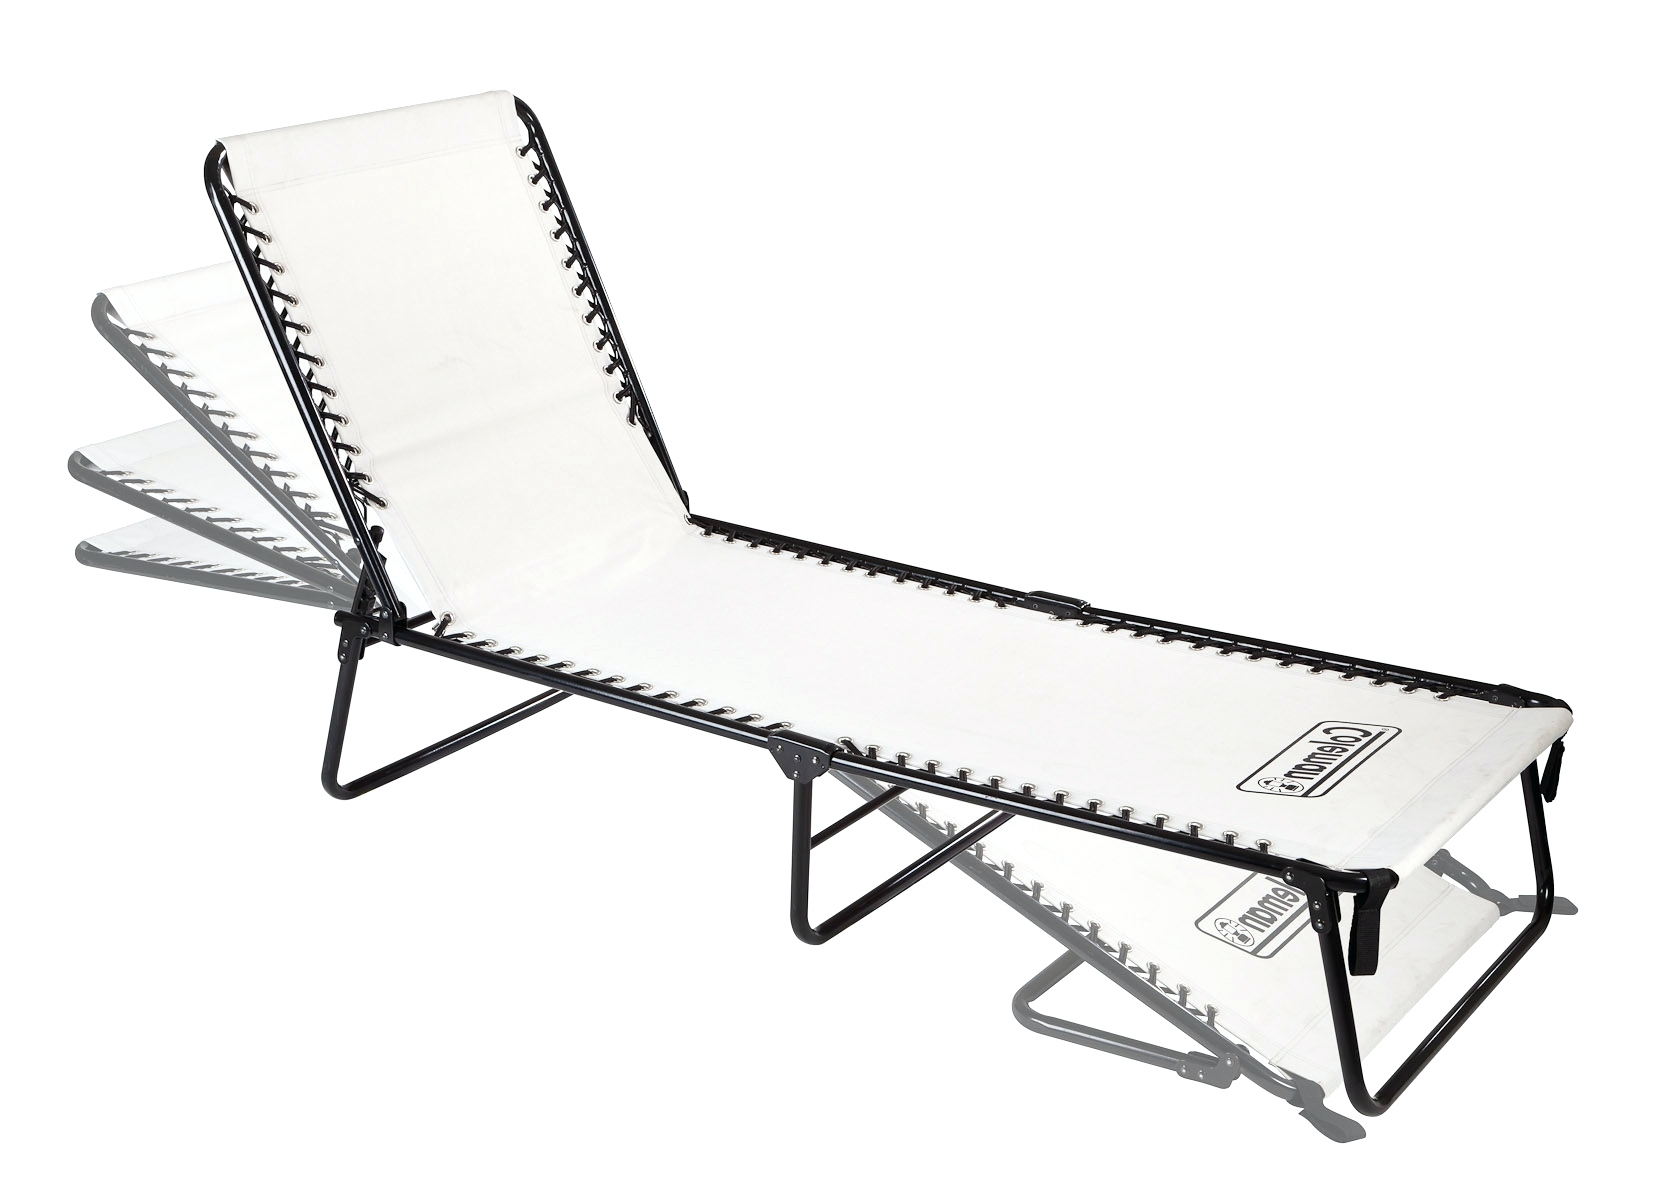 2018 Folding Chaises Inside Portable Chaise Lounge Chairs Outdoor • Lounge Chairs Ideas (View 1 of 15)